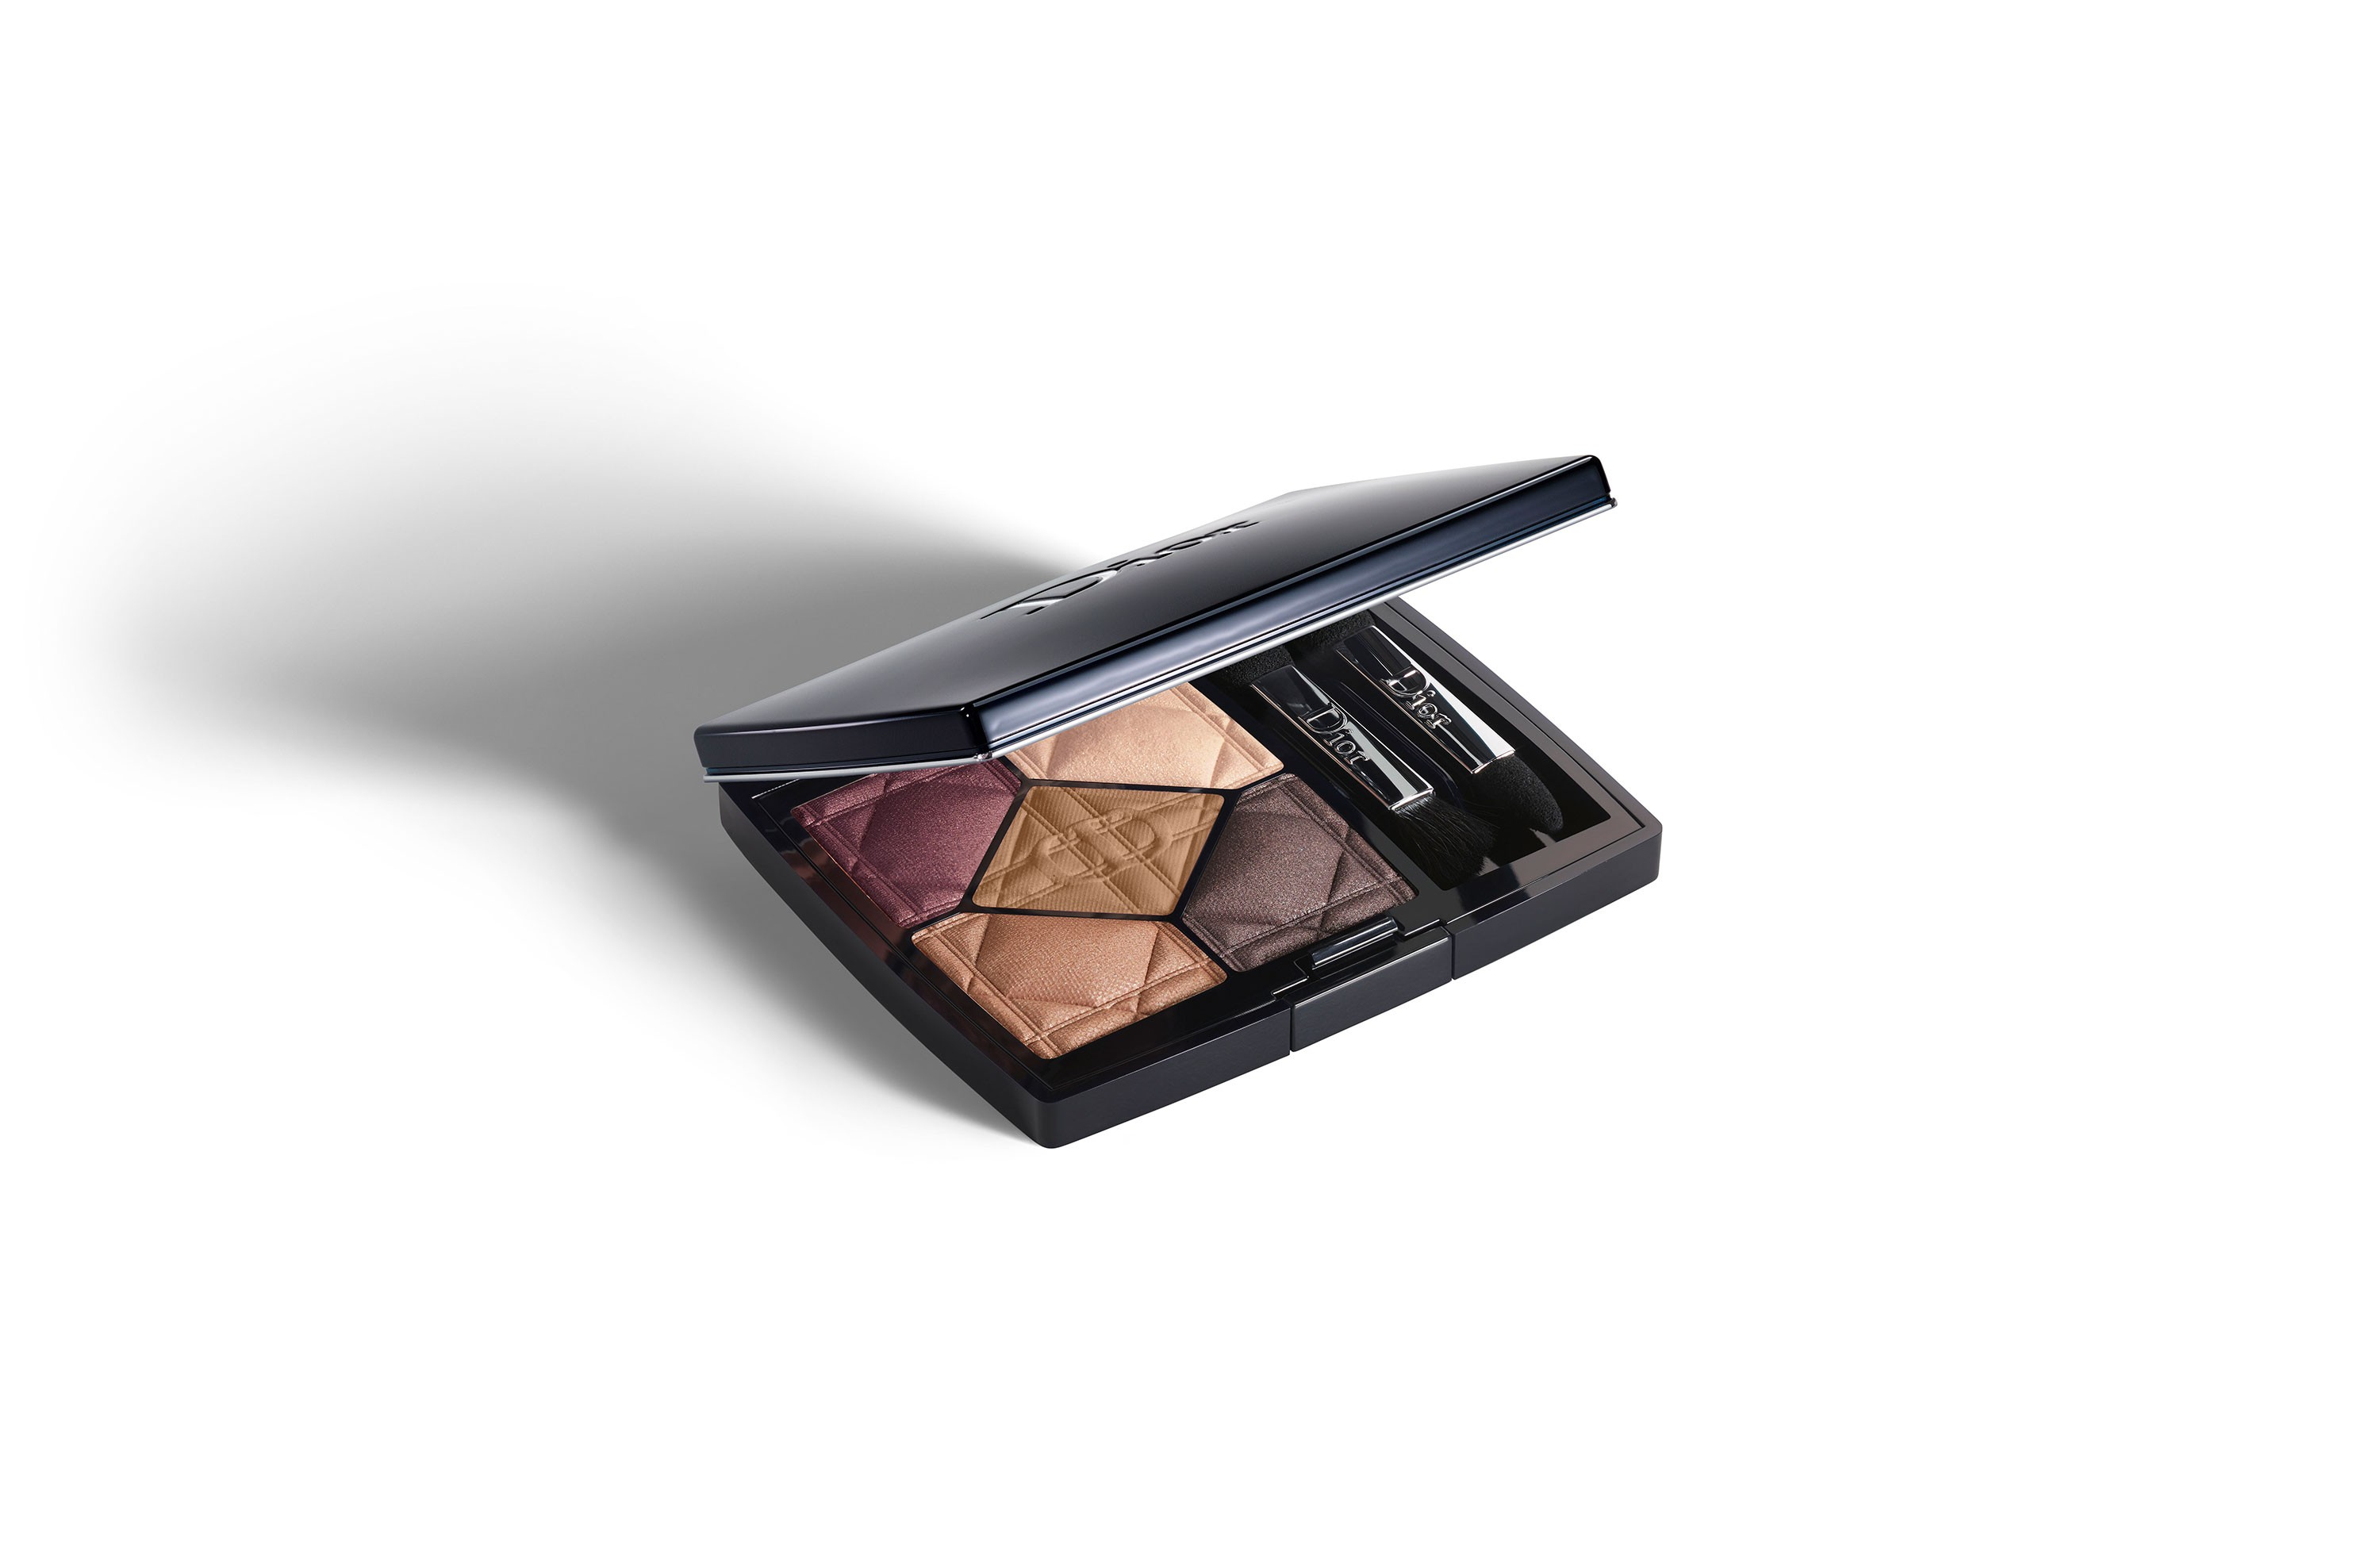 CHRISTIAN DIOR 5 COULEURS SOMBRA DE OJOS COUTURE 797 FEEL